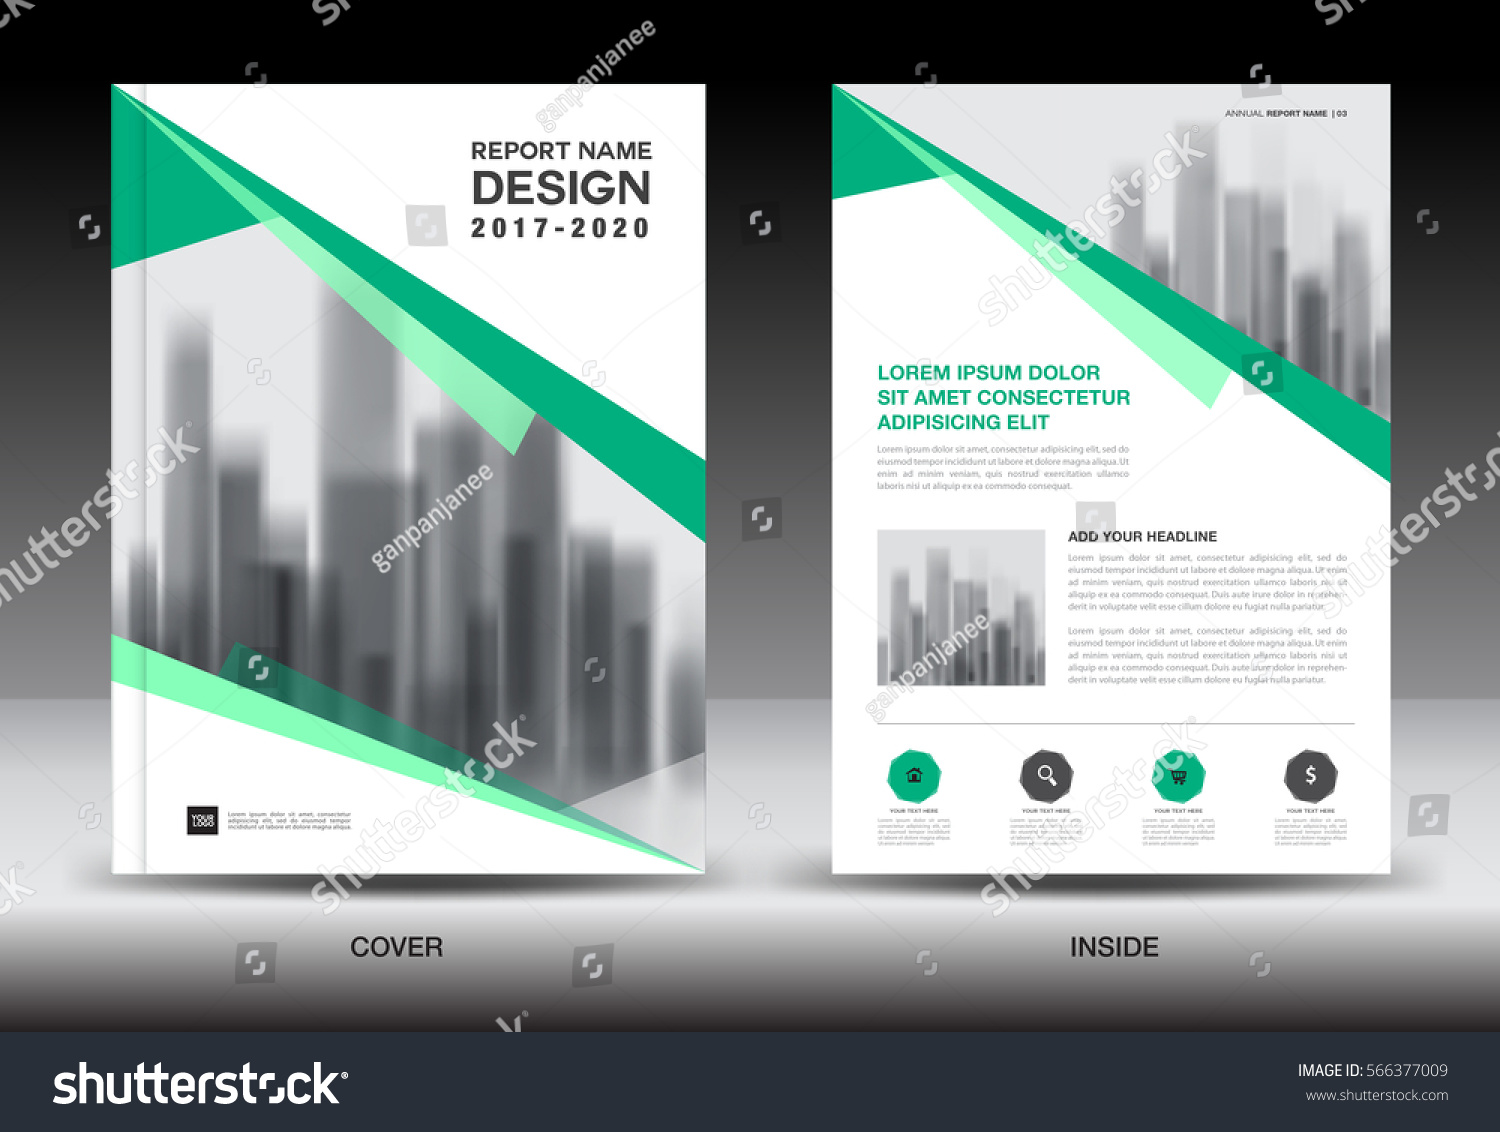 annual report brochure flyer template green cover design annual report brochure flyer template green cover design business flyer template book